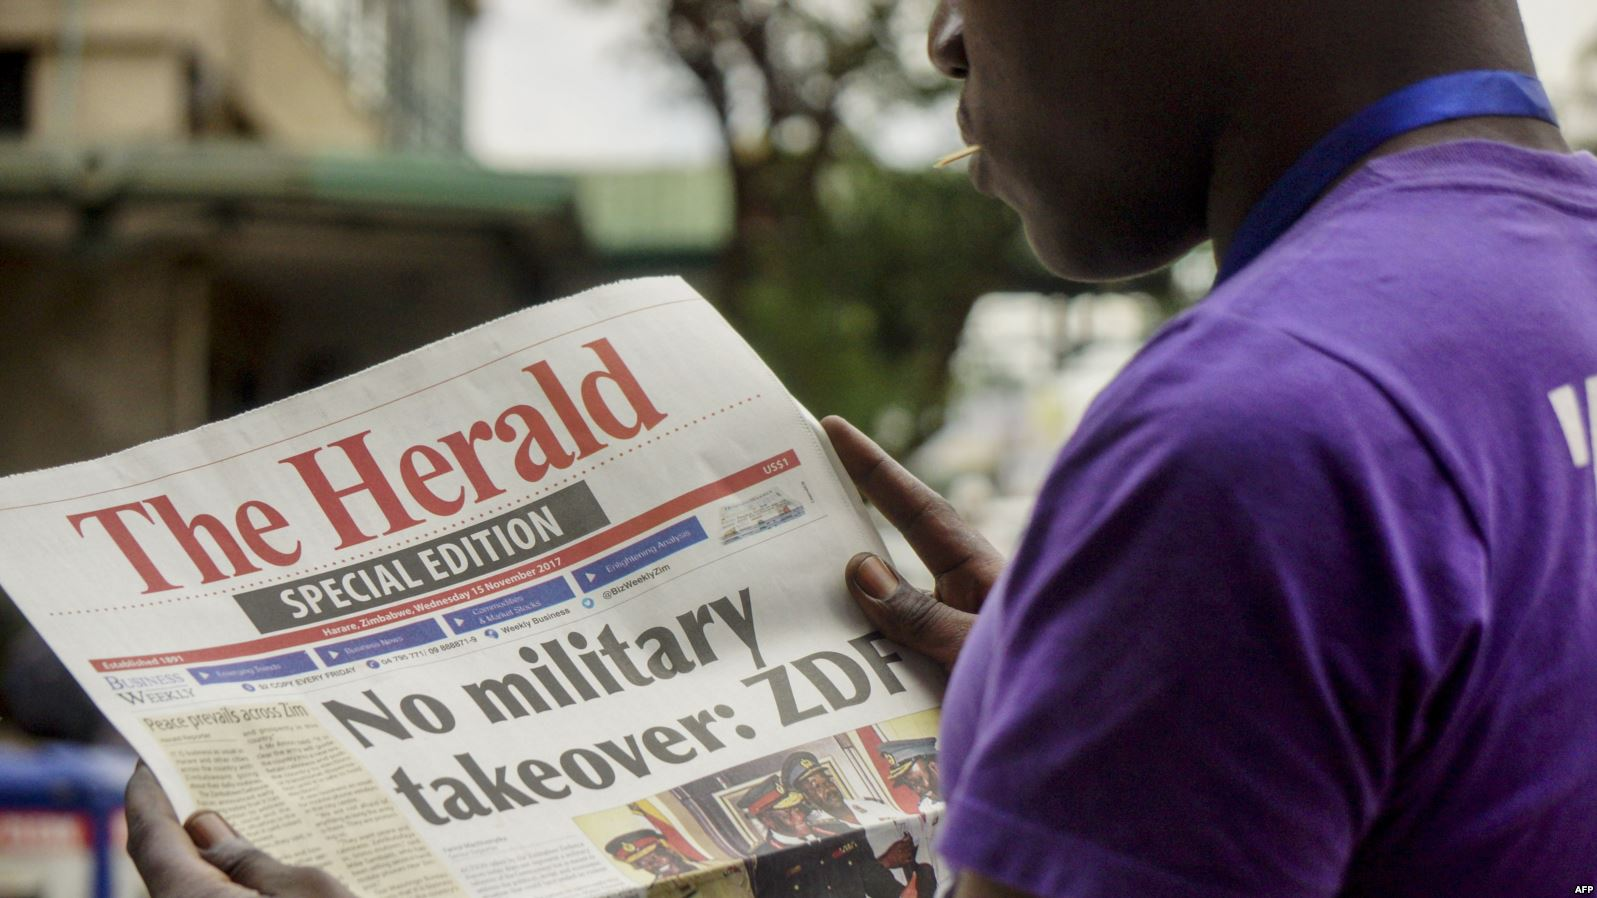 ZBC, Zimpapers sued over partisan reporting